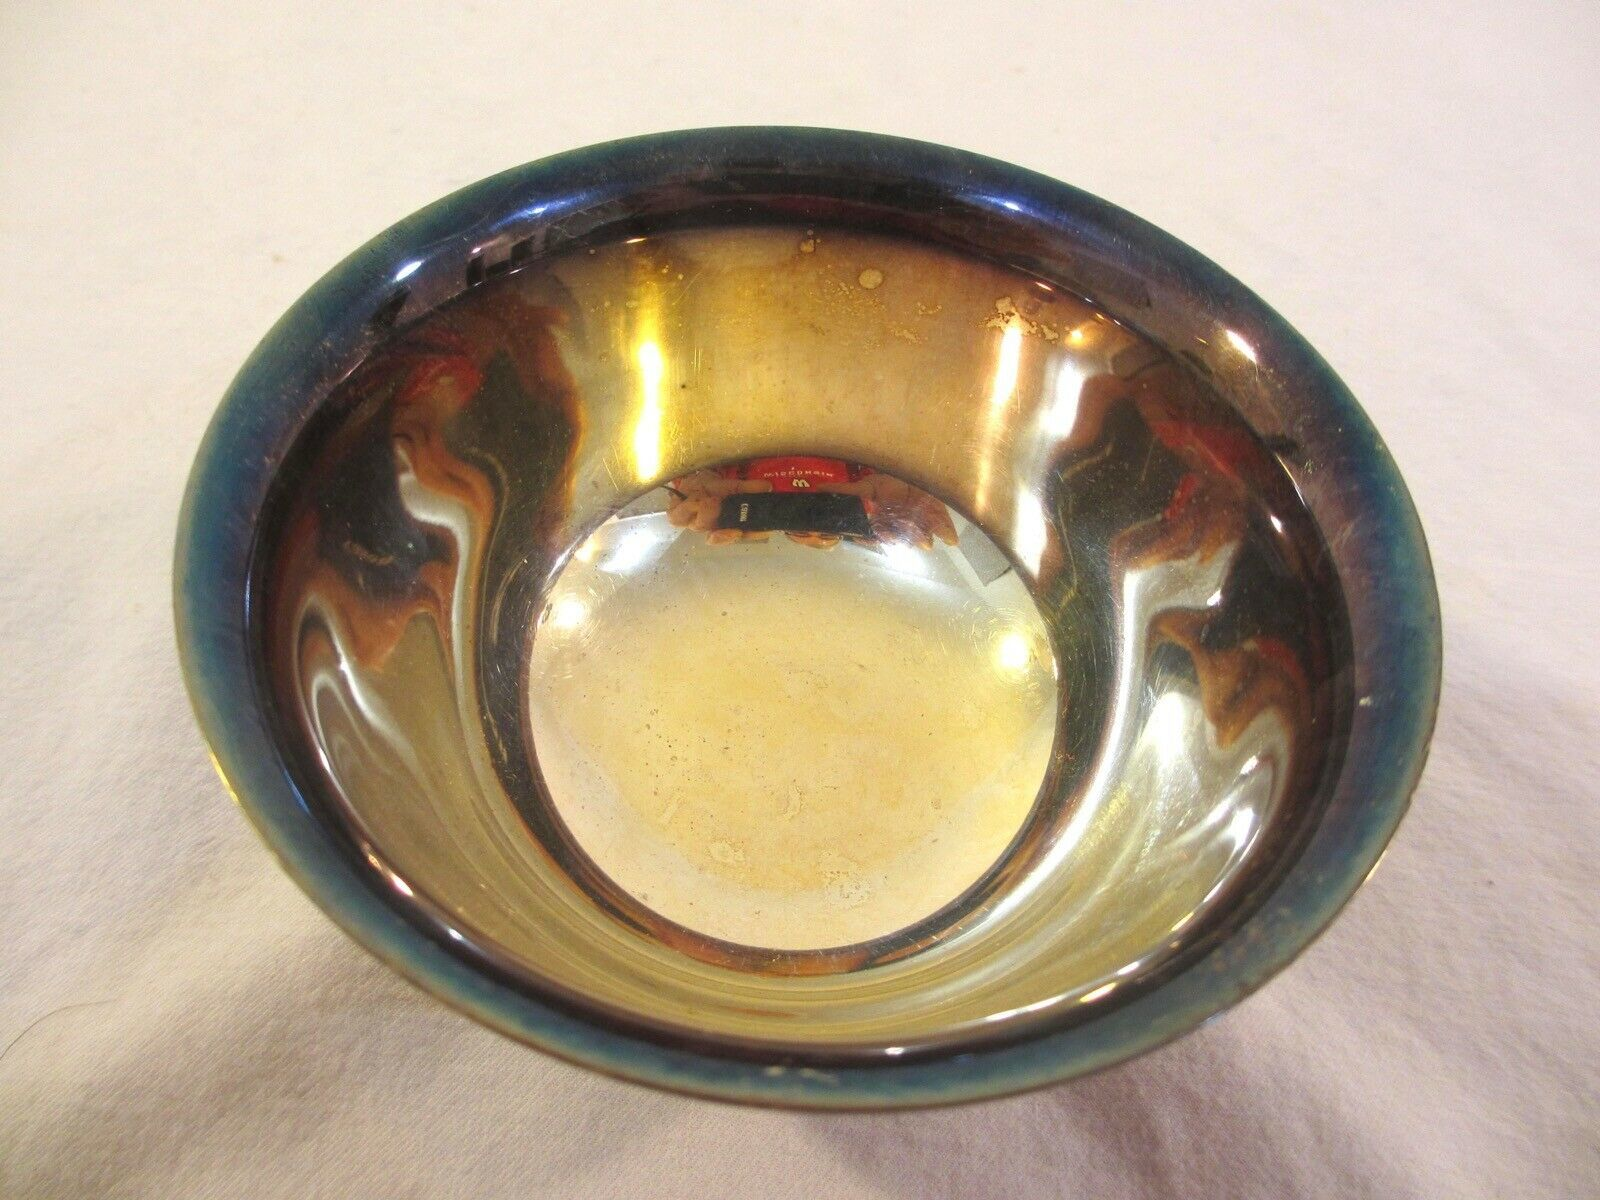 Reed & Barton Silver-plated Bowl – Paul Revere Design #14 - $22.50